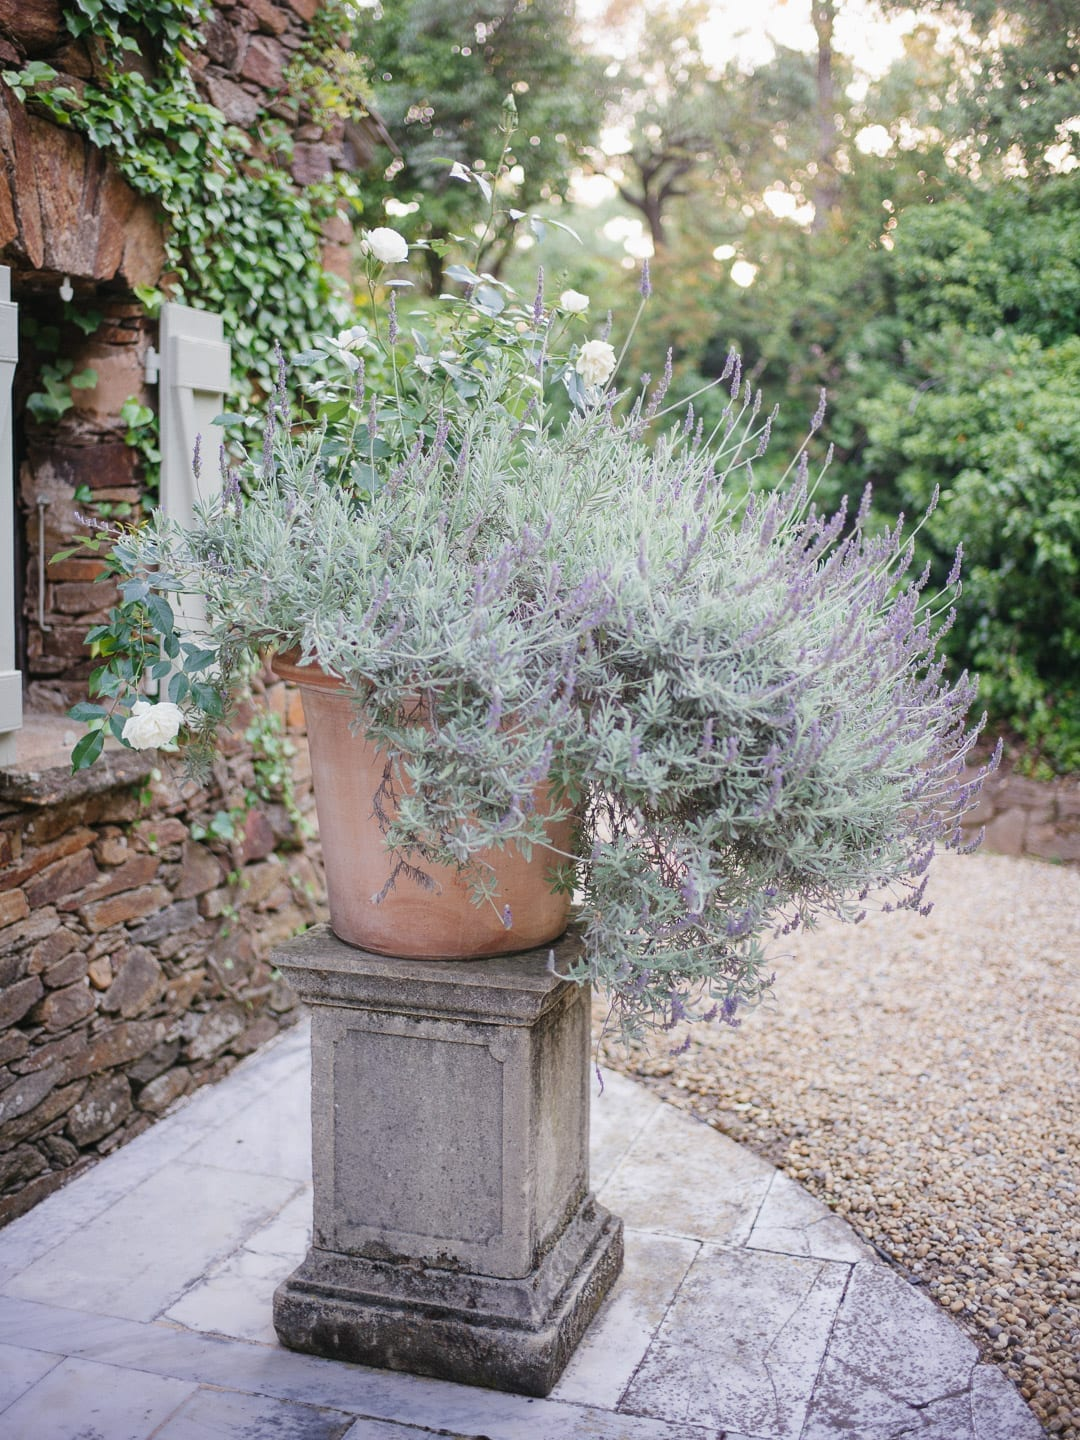 Lavender growing on a pedestal in a French garden - First Glimpse of France